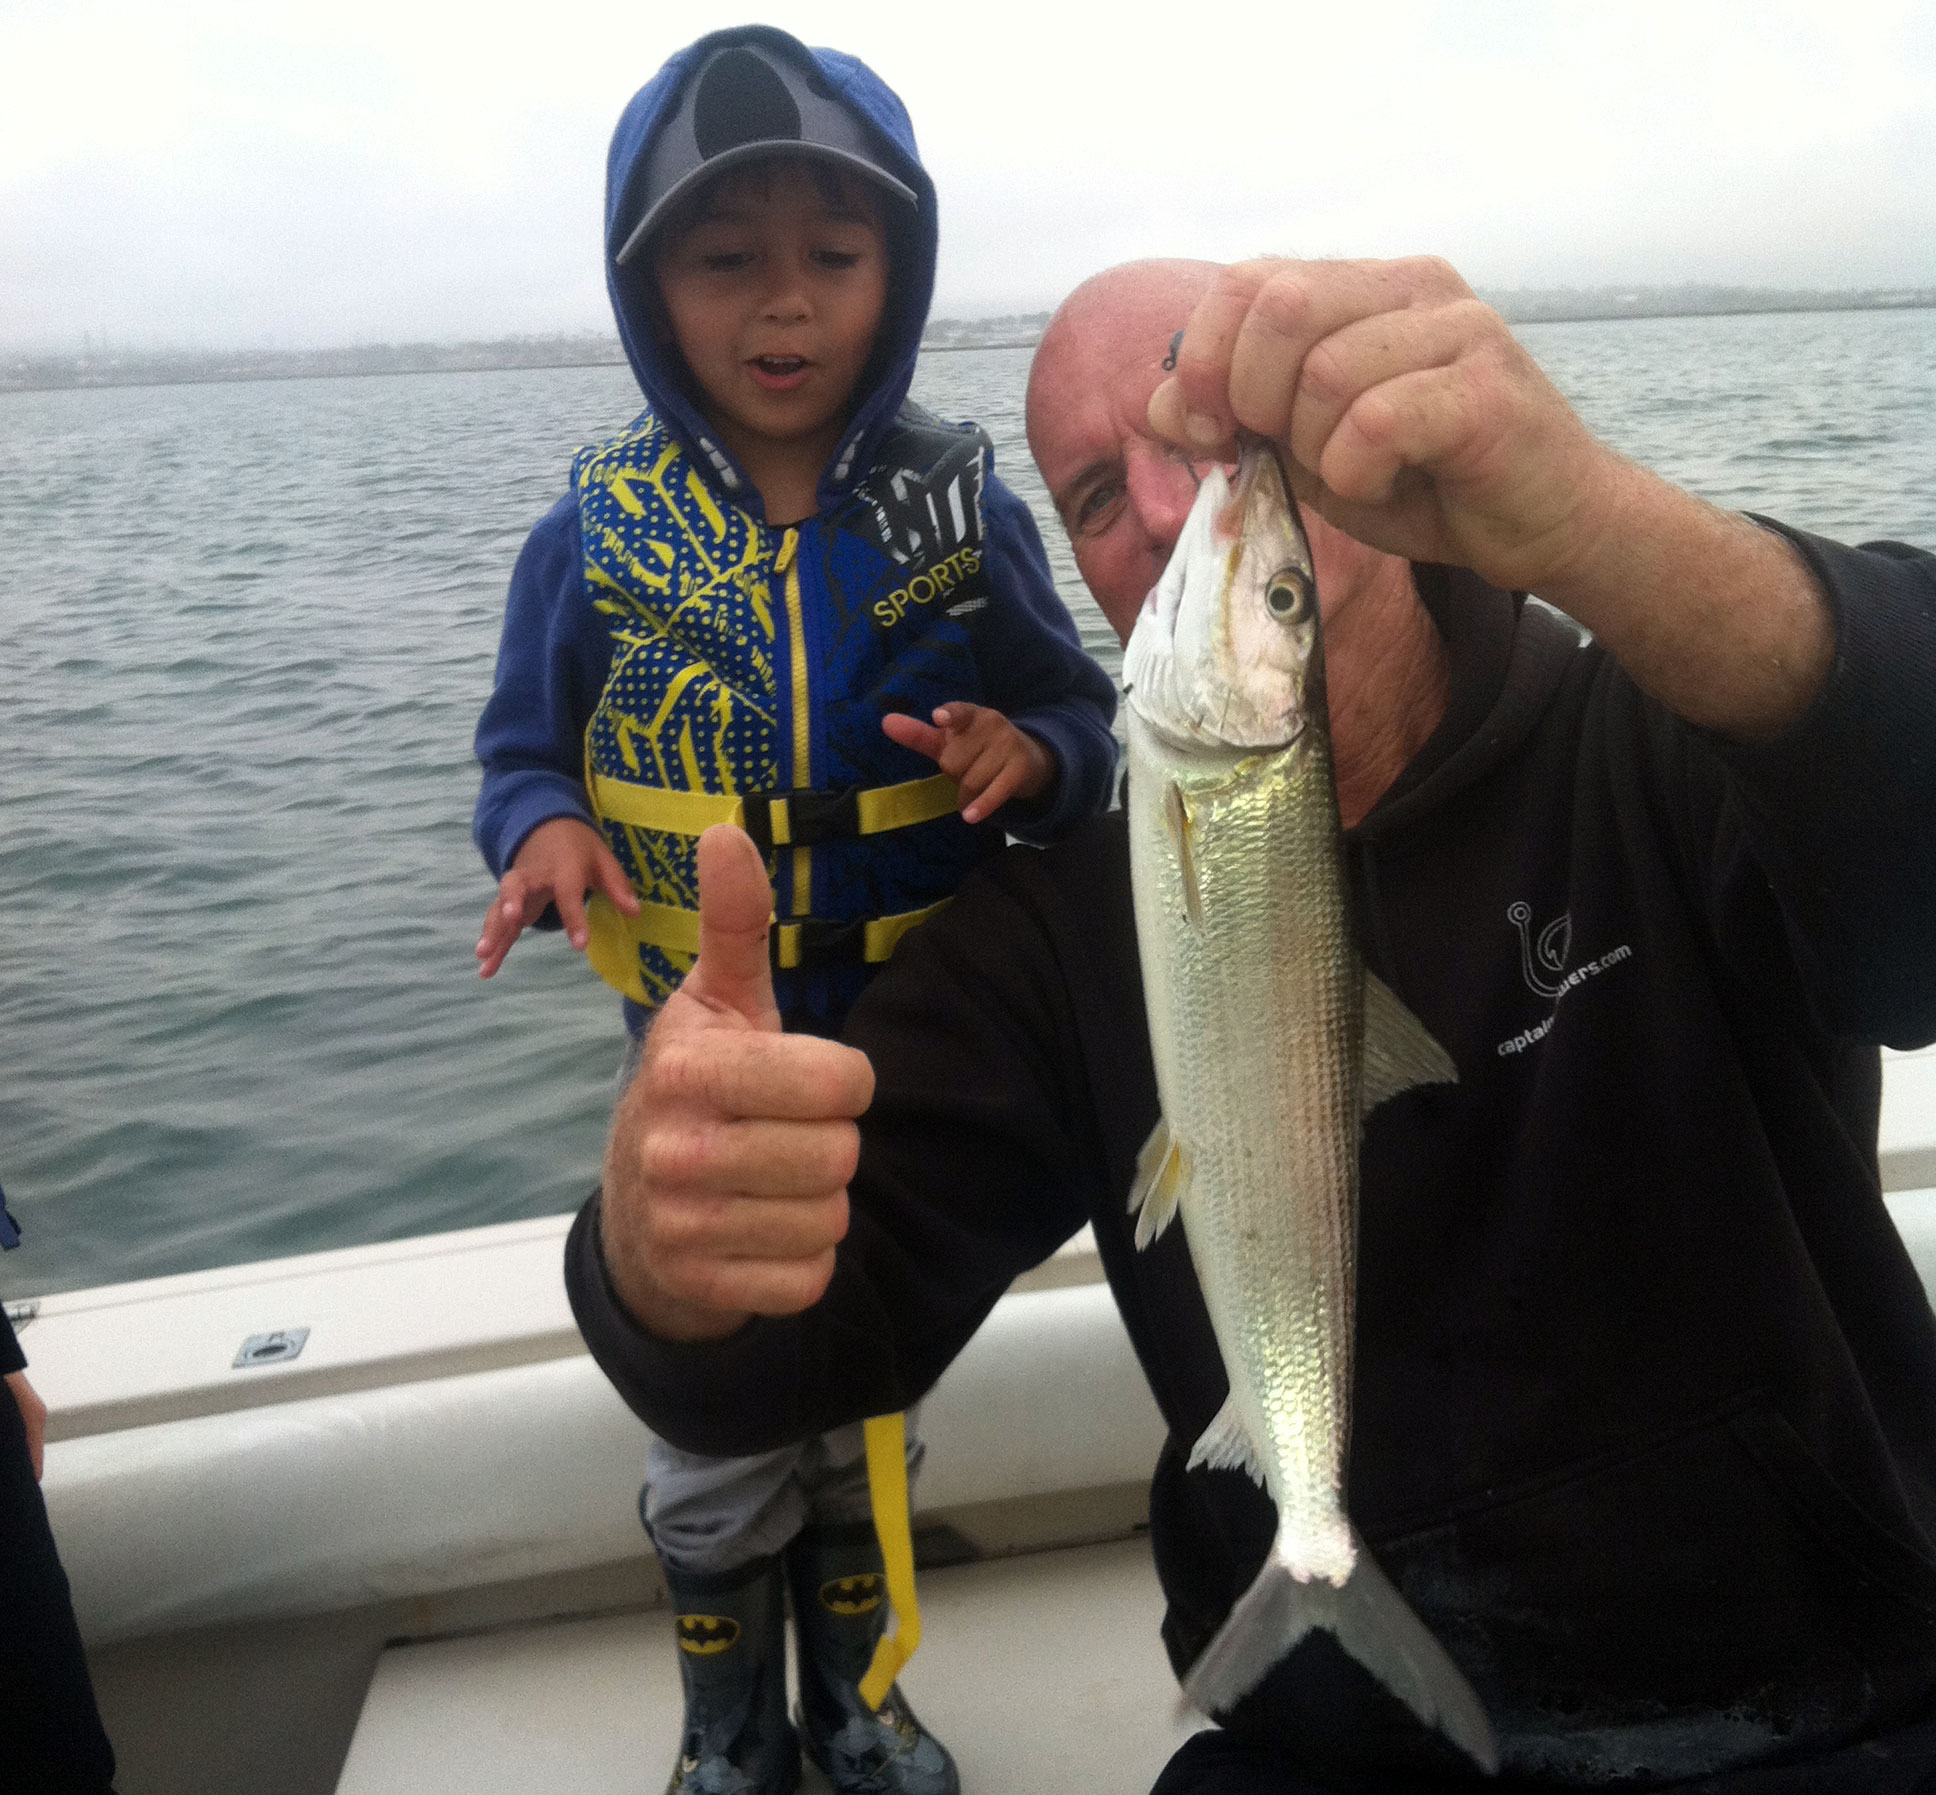 San diego bay fish report 6 12 15 for San diego fish report